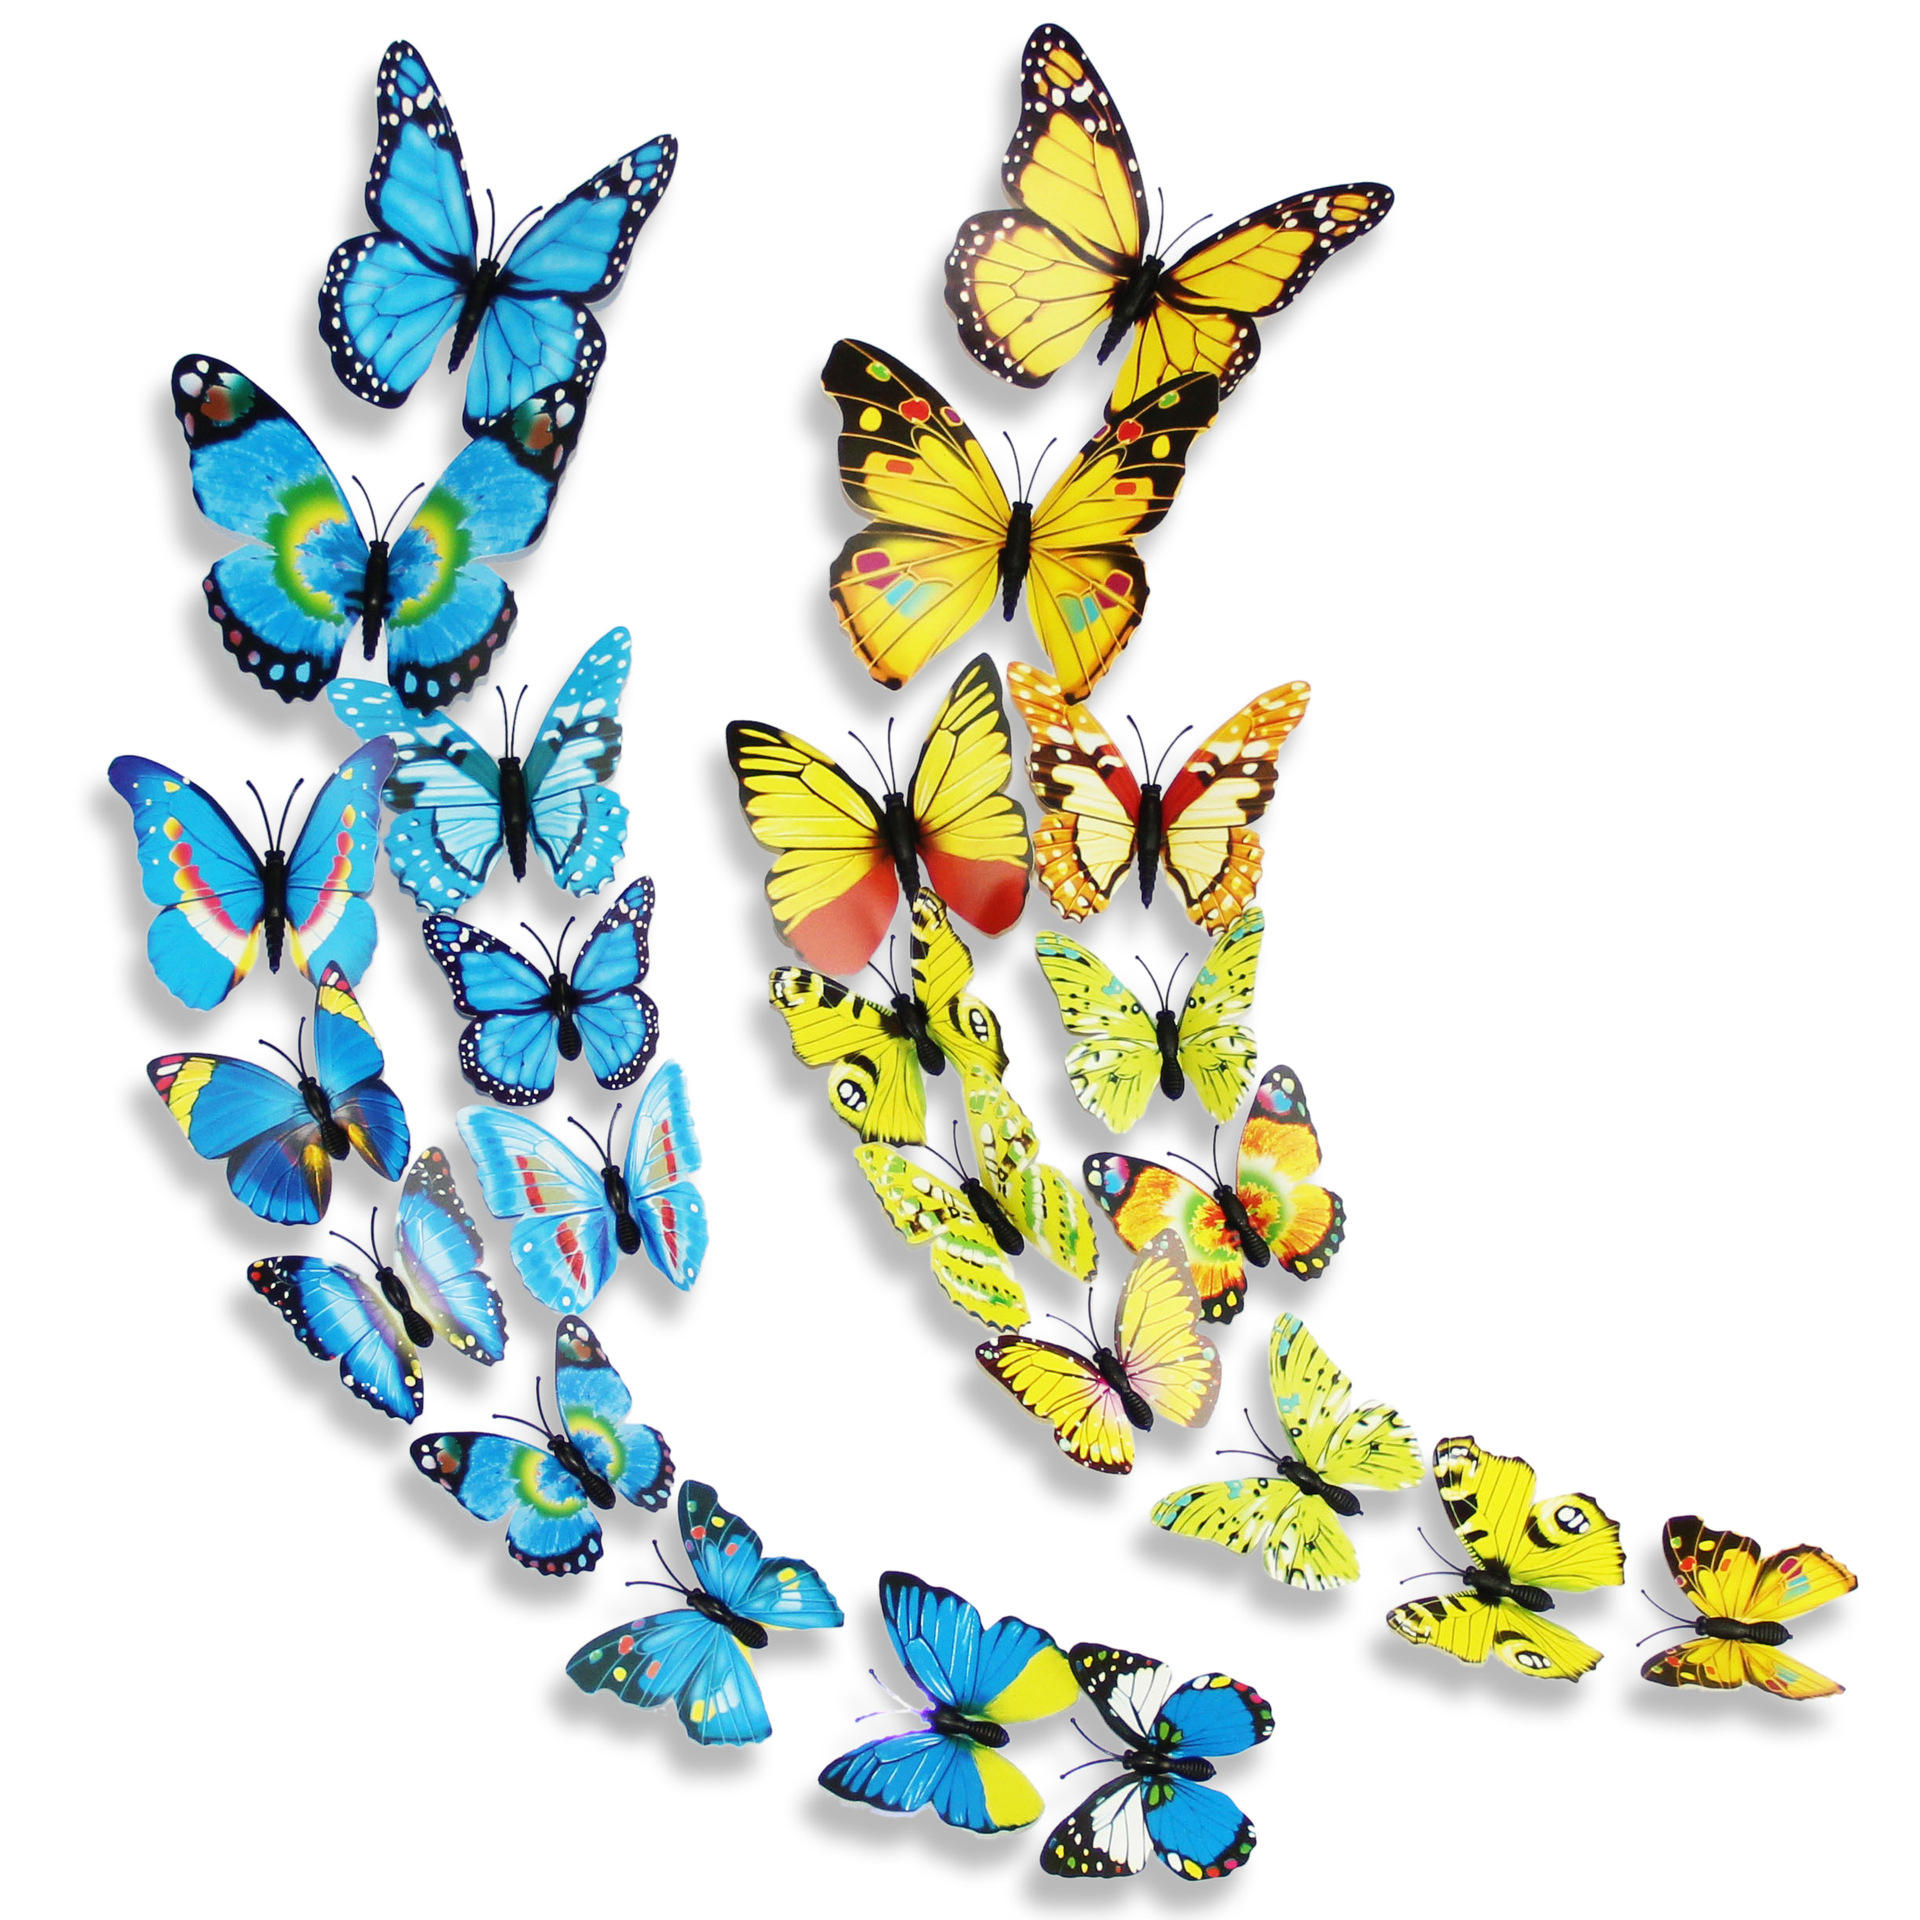 12 Pcs PVC Butterfly Double-Deck 3D Wall Stickers Home Decor Adhesive Wall Decoration